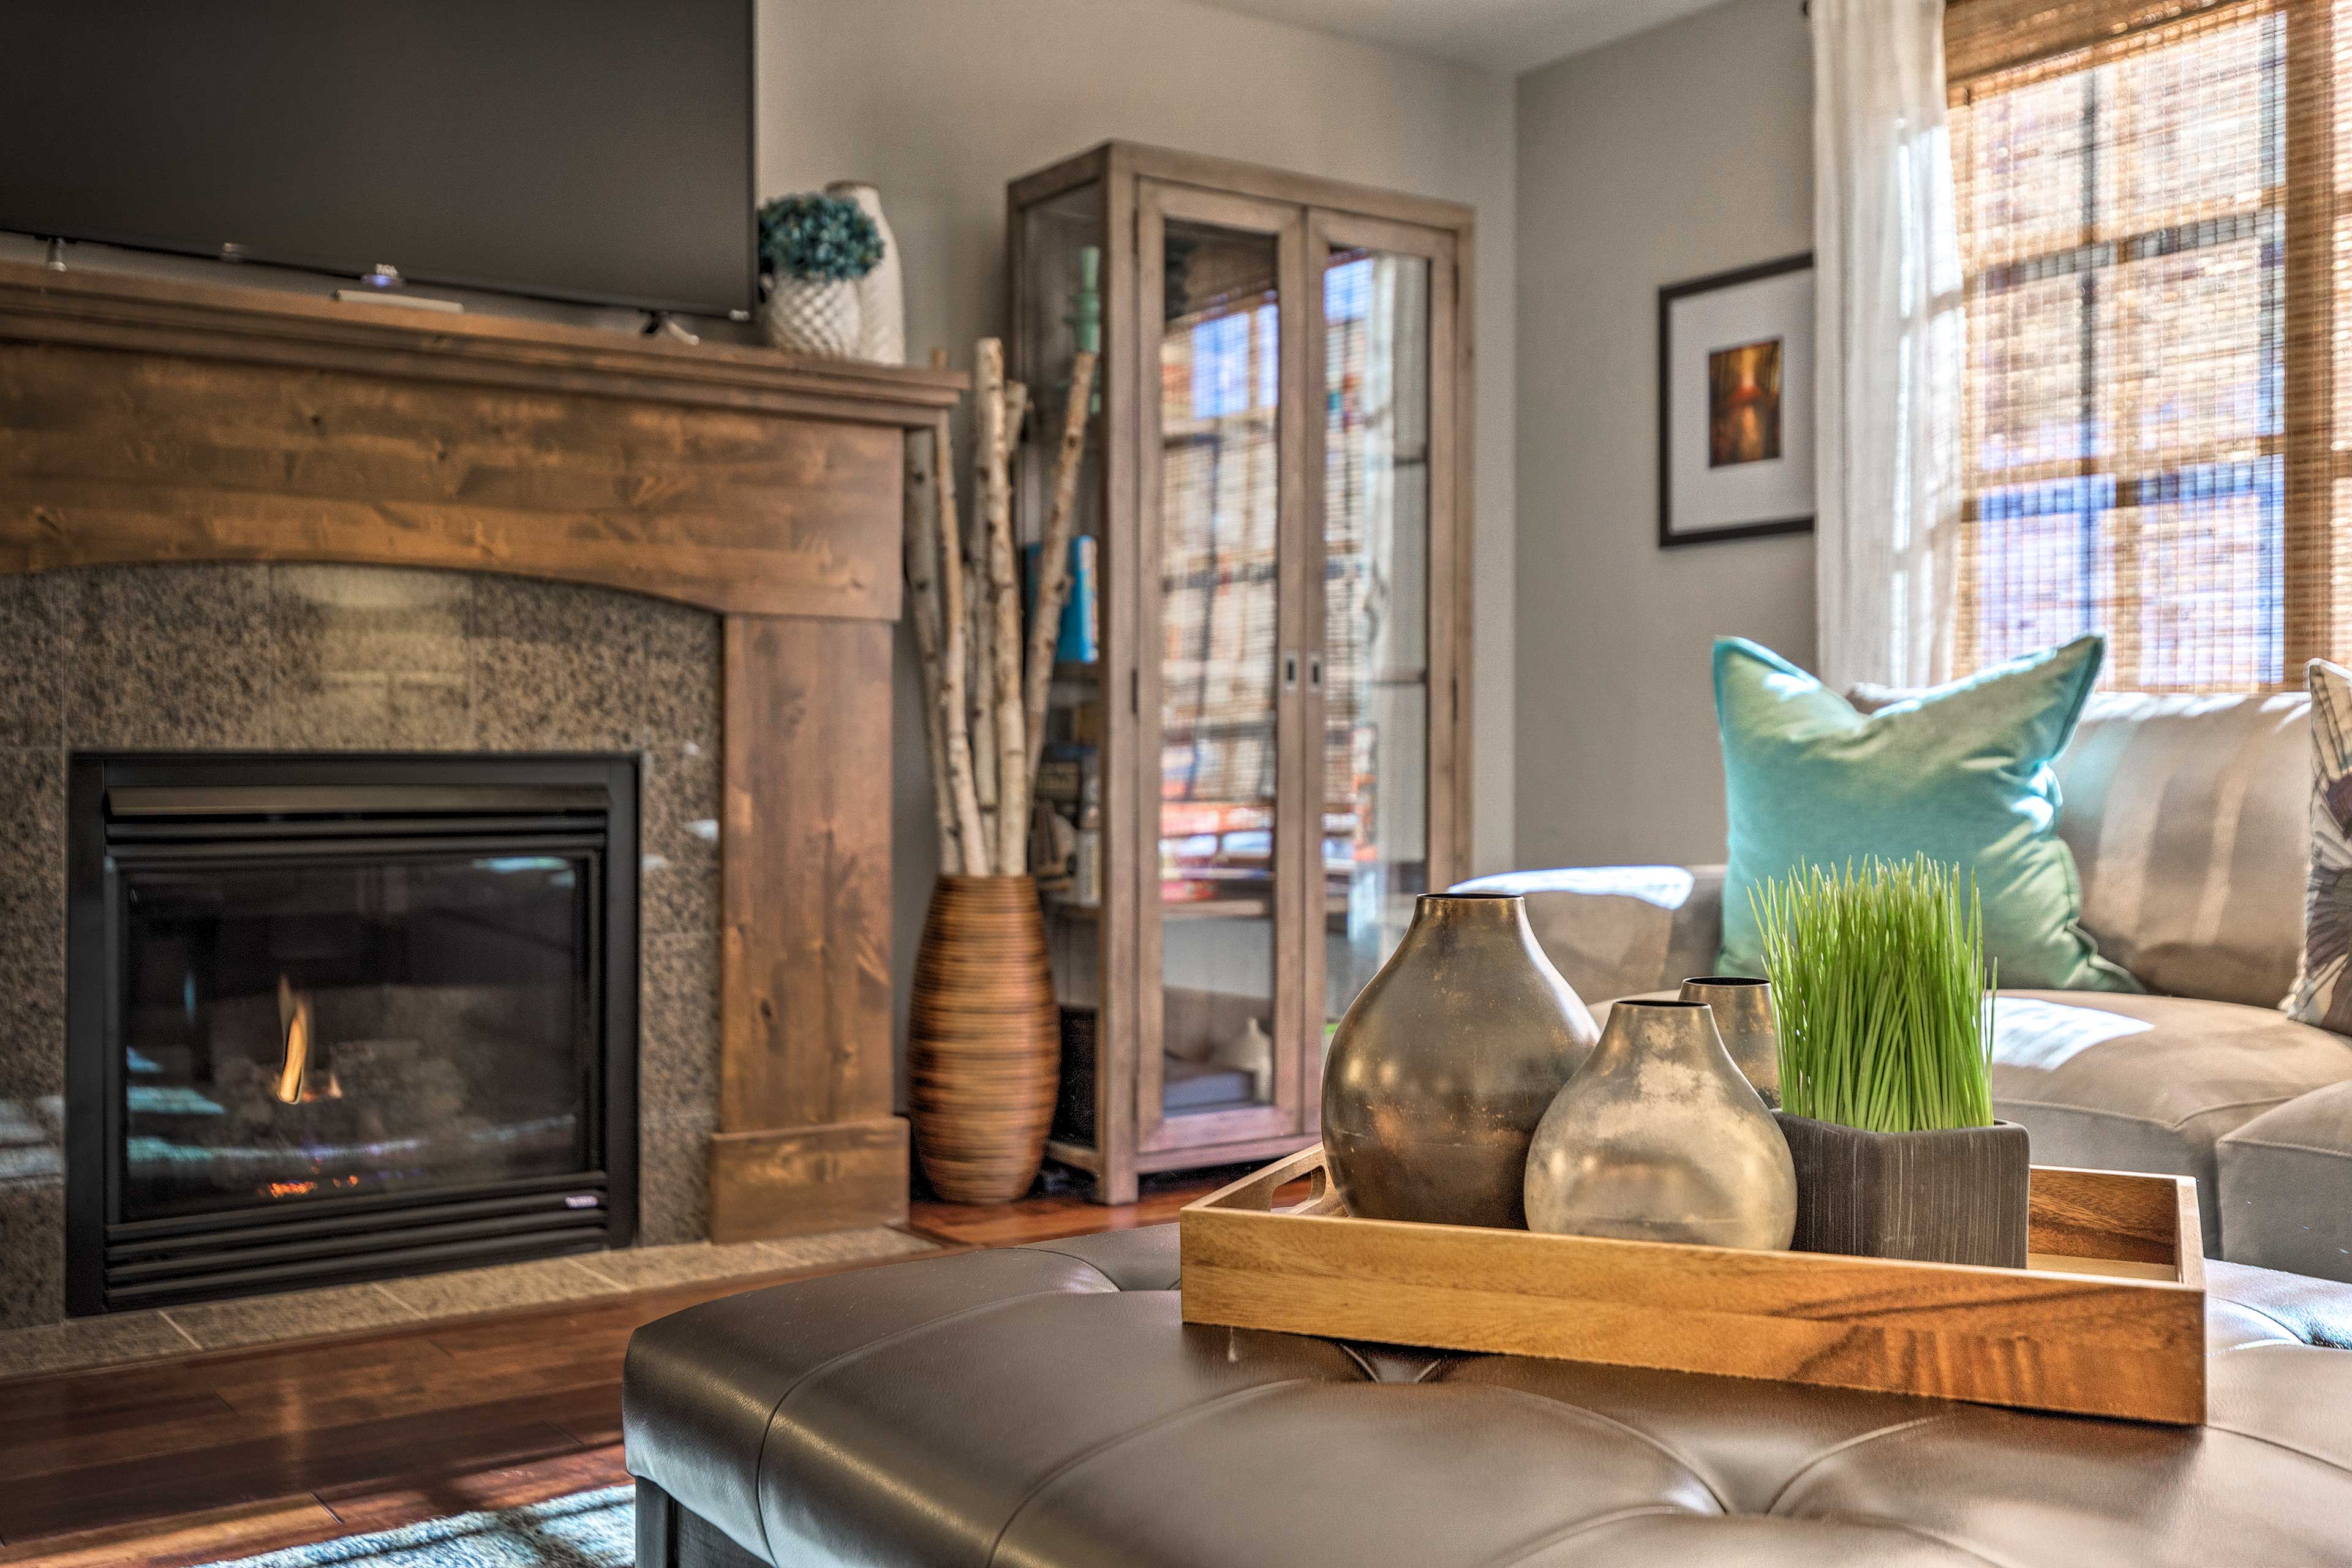 Prop your feet up in front of the gas fireplace while watching the cable TV.